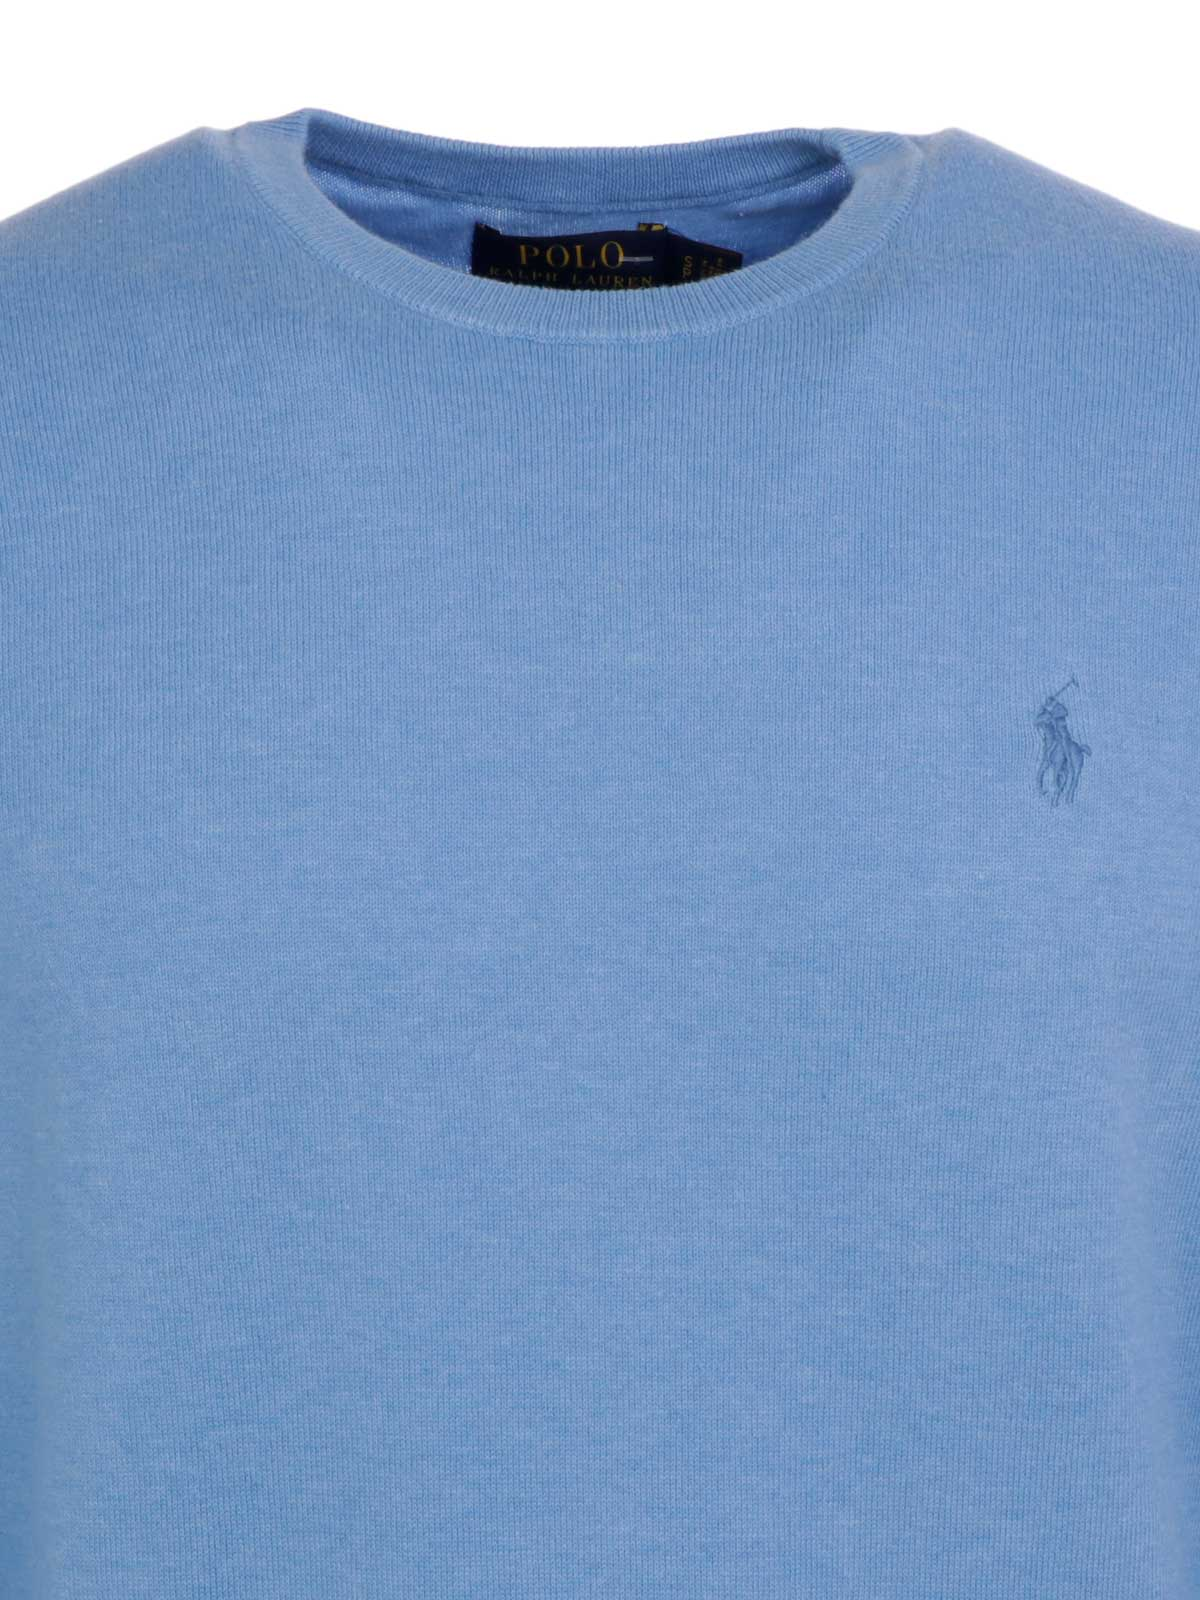 Picture of POLO RALPH LAUREN | Men's Crewneck Sweater